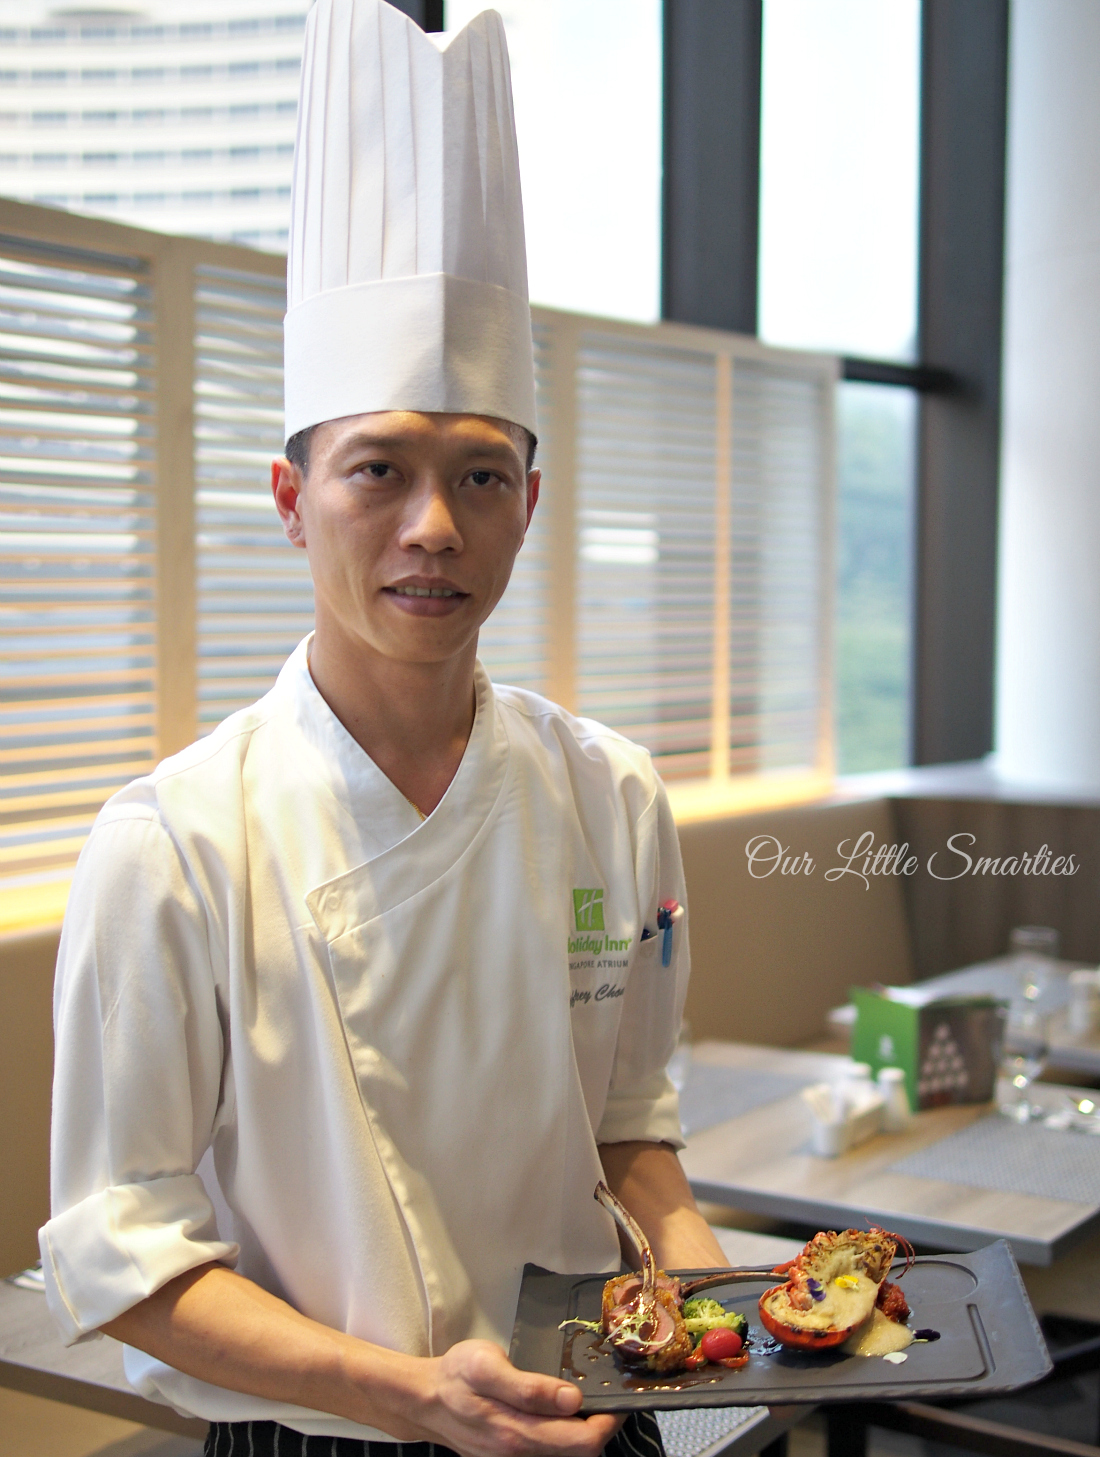 Chef at Atrium Restaurant